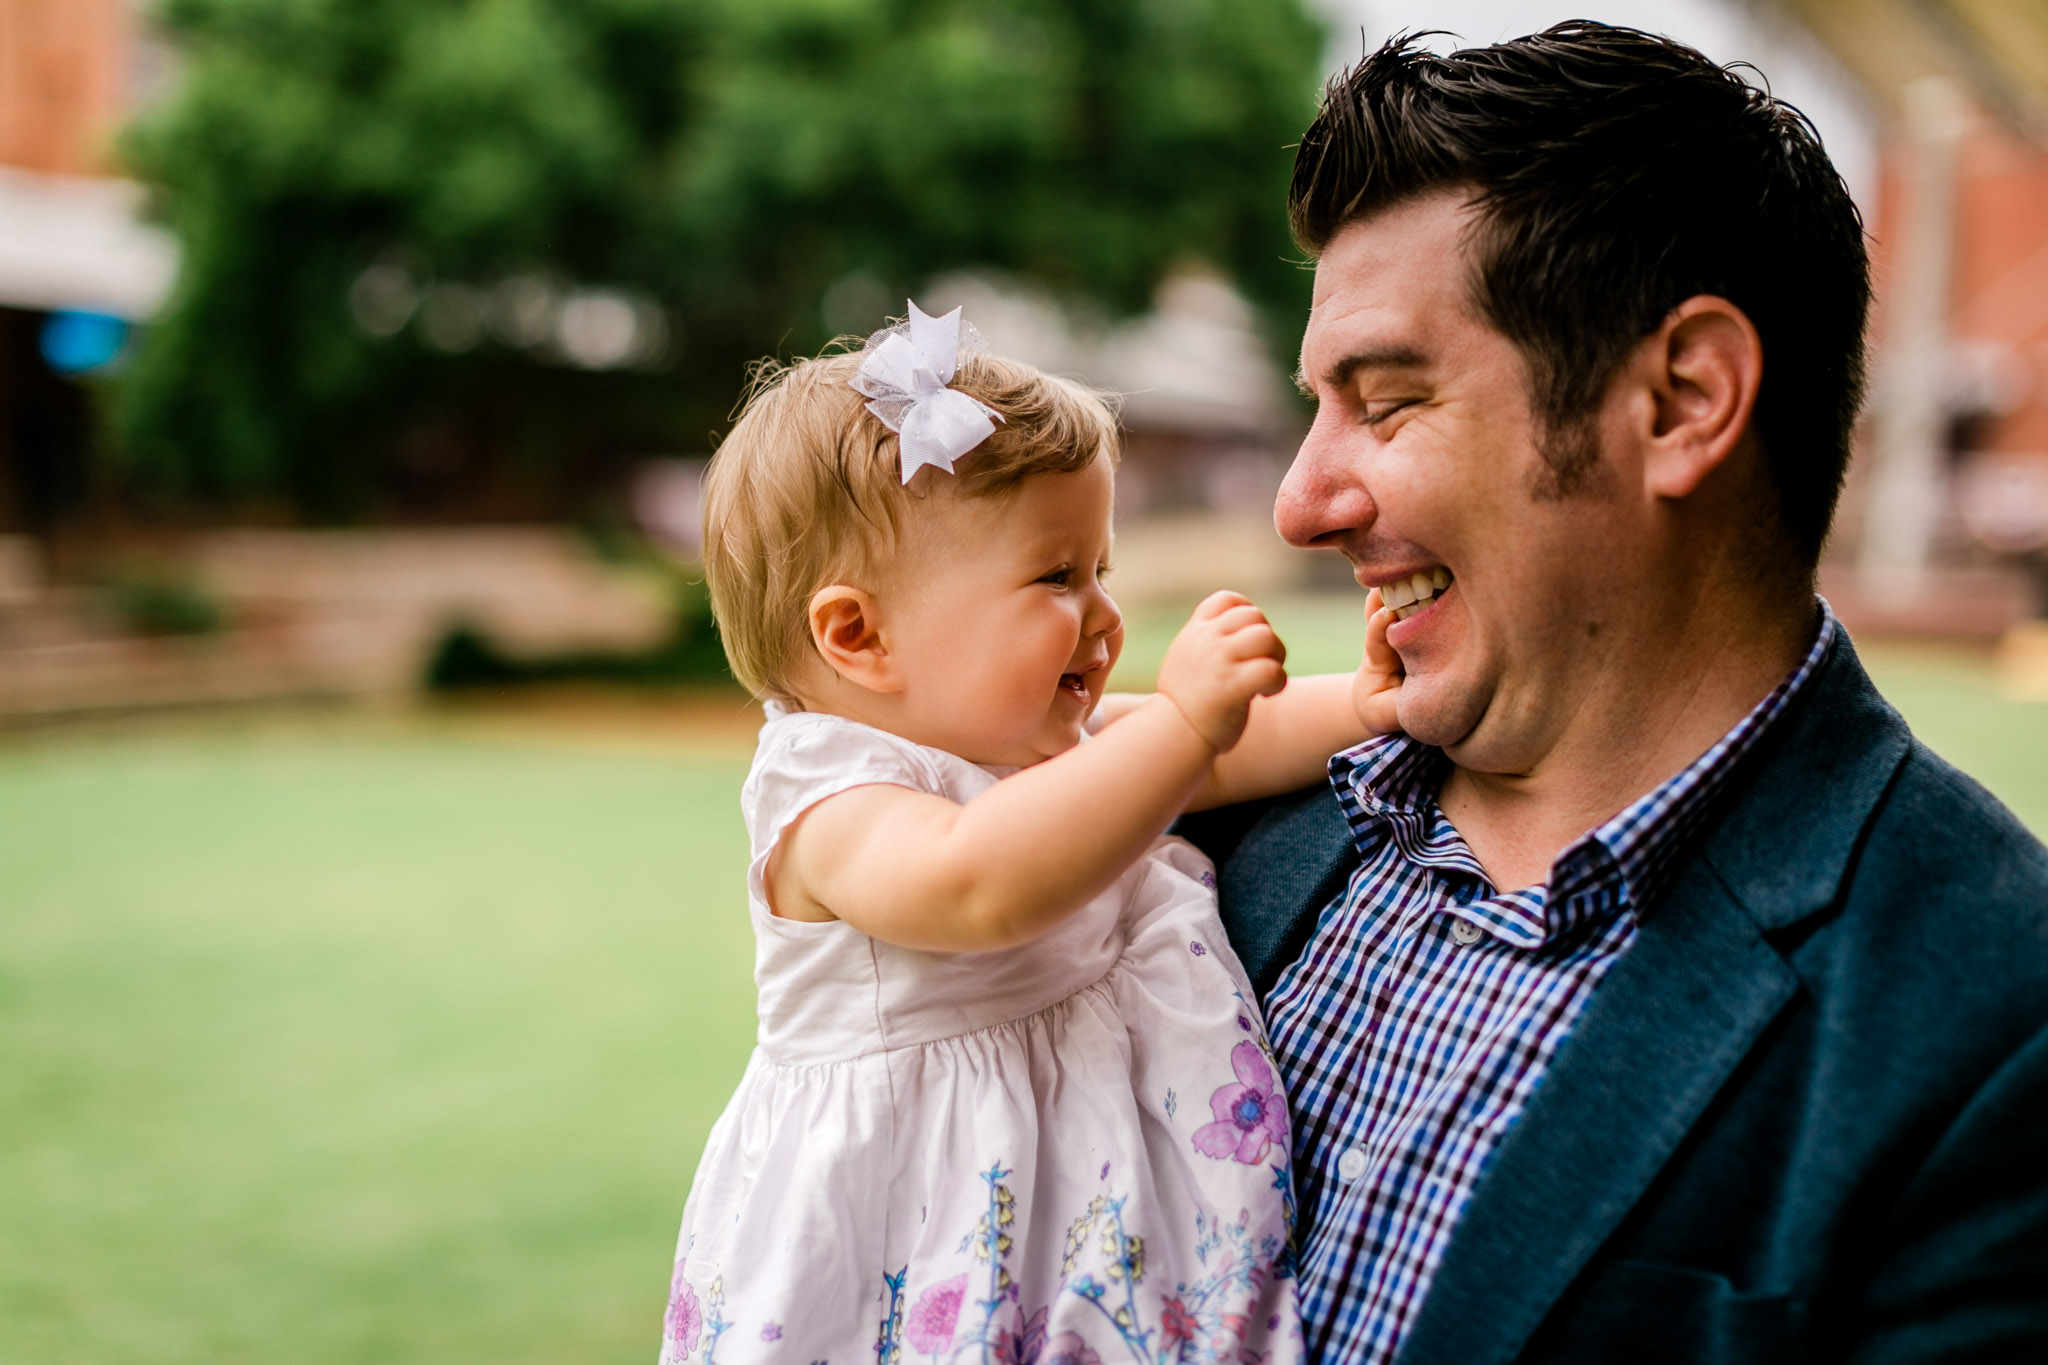 Durham Family Photographer | By G. Lin Photography | father and baby daughter playing with each other